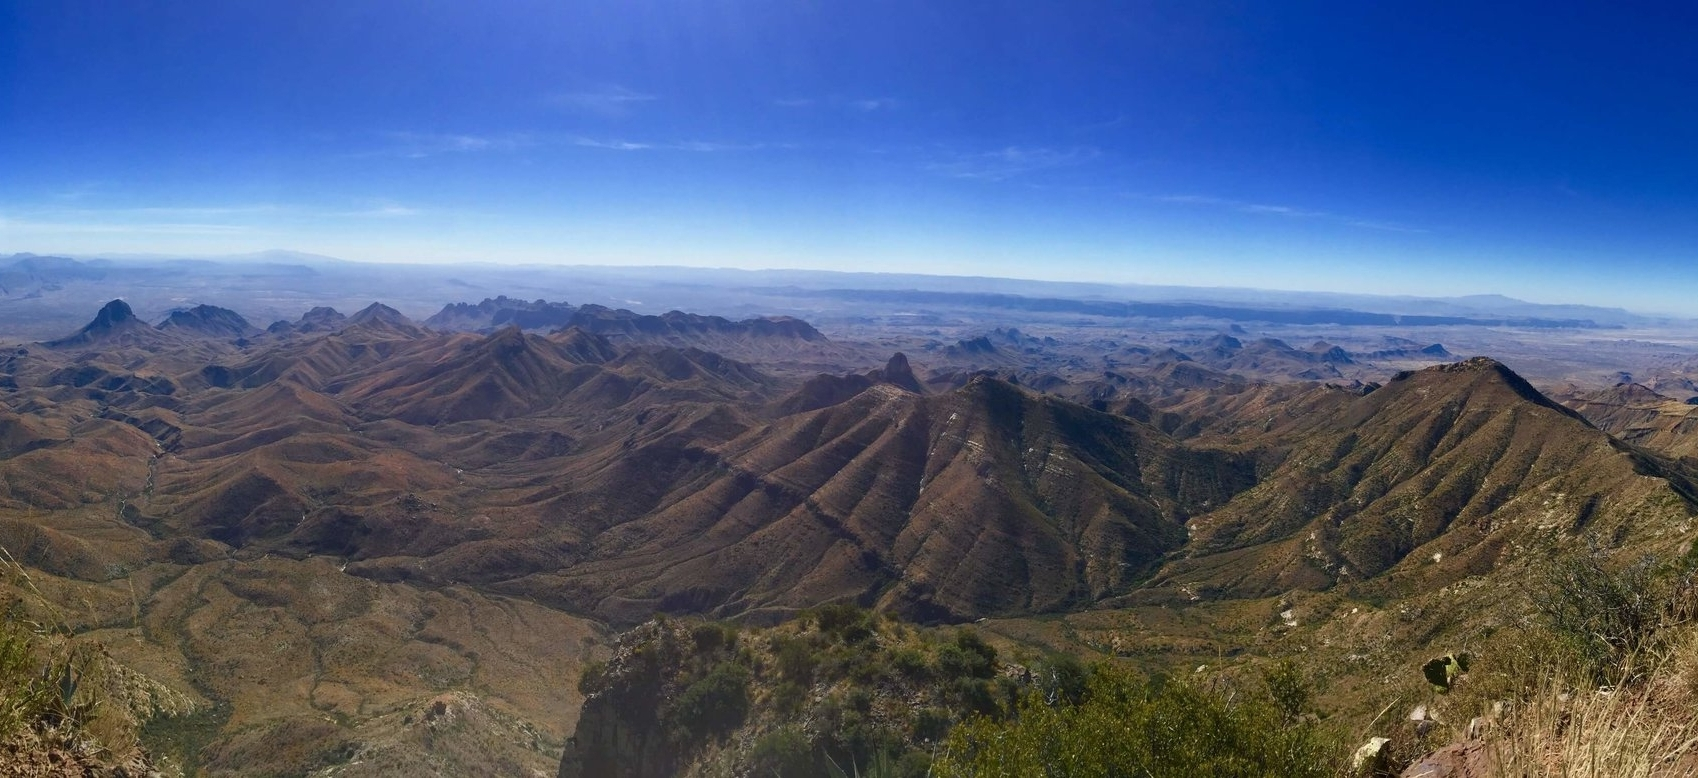 A spectacular view from the South Rim of the Chisos Mountains.